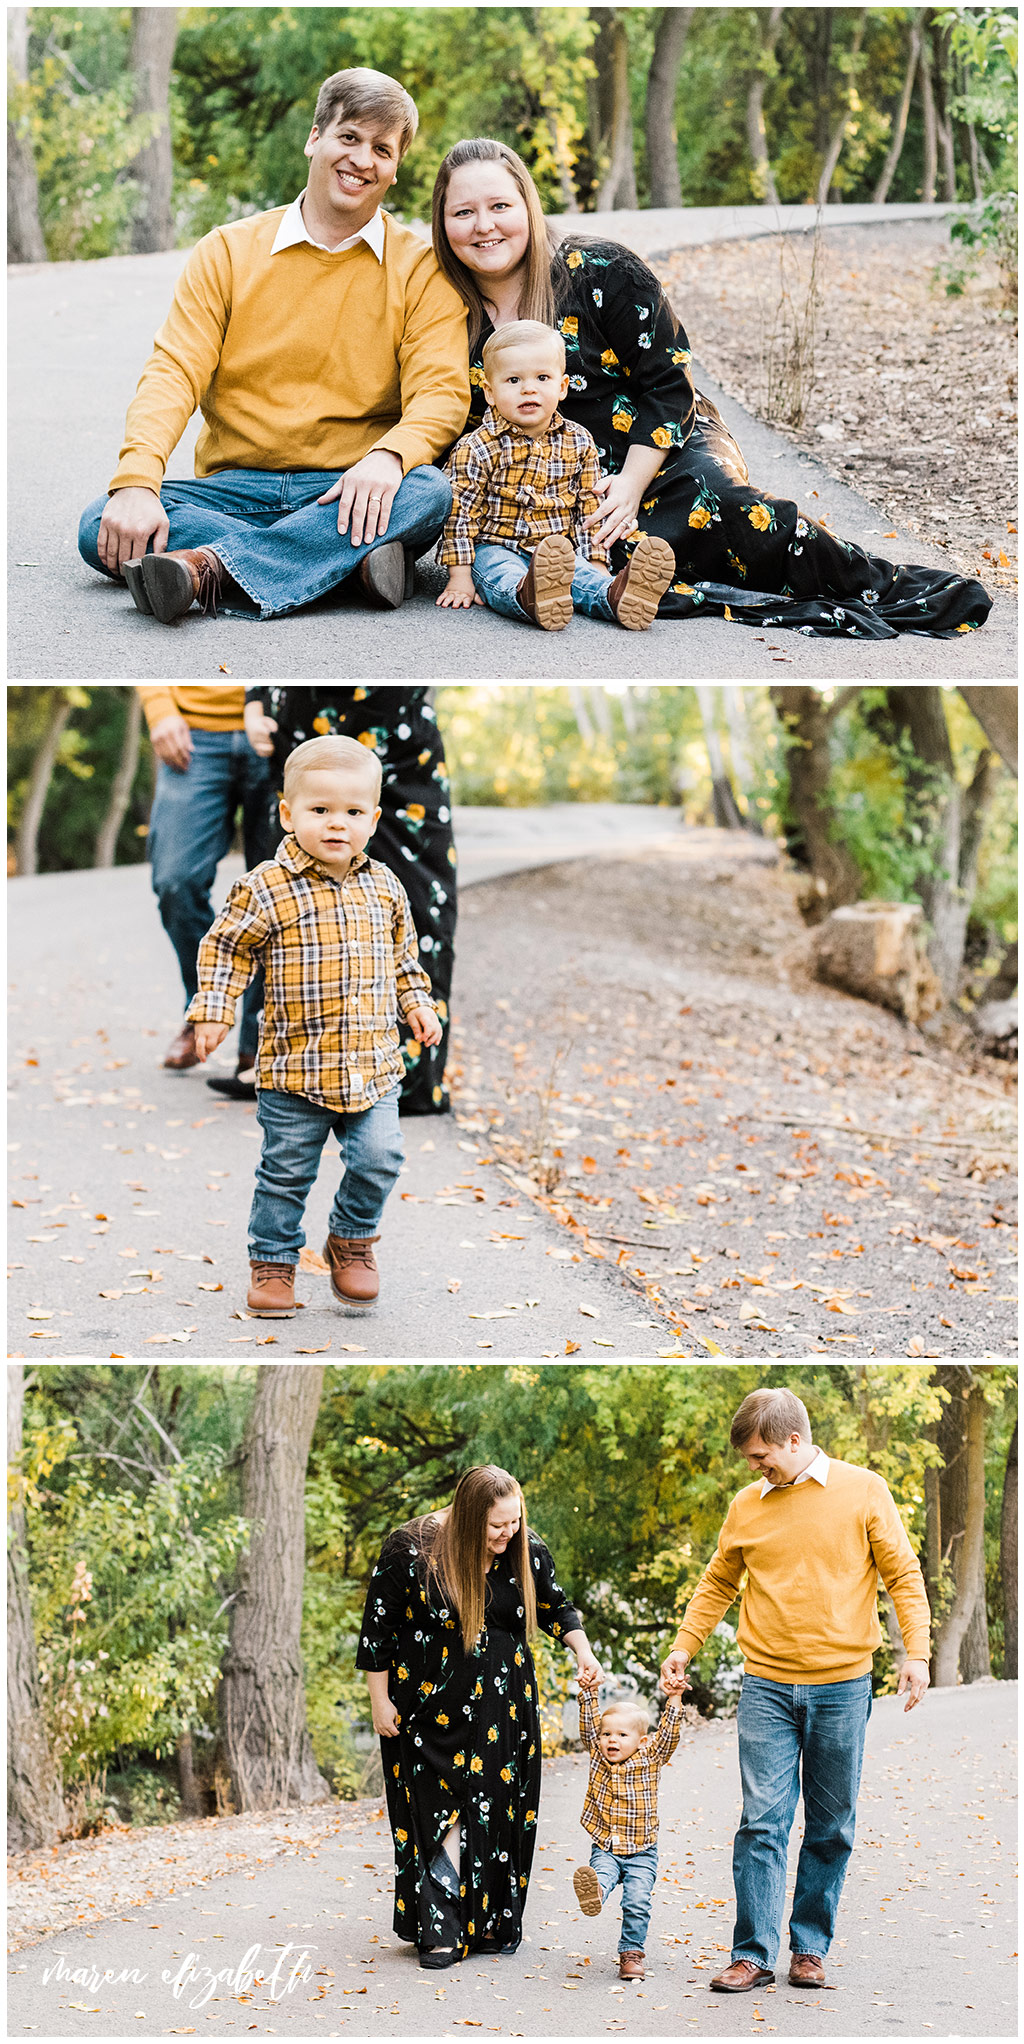 The Lakeshore Bridge Trailhead is one of my go to locations in Utah for Family Pictures. It's got a tree covered path, open fields, a country road, and Utah Lake nearby. | Arizona Family Photographer | Maren Elizabeth Photography